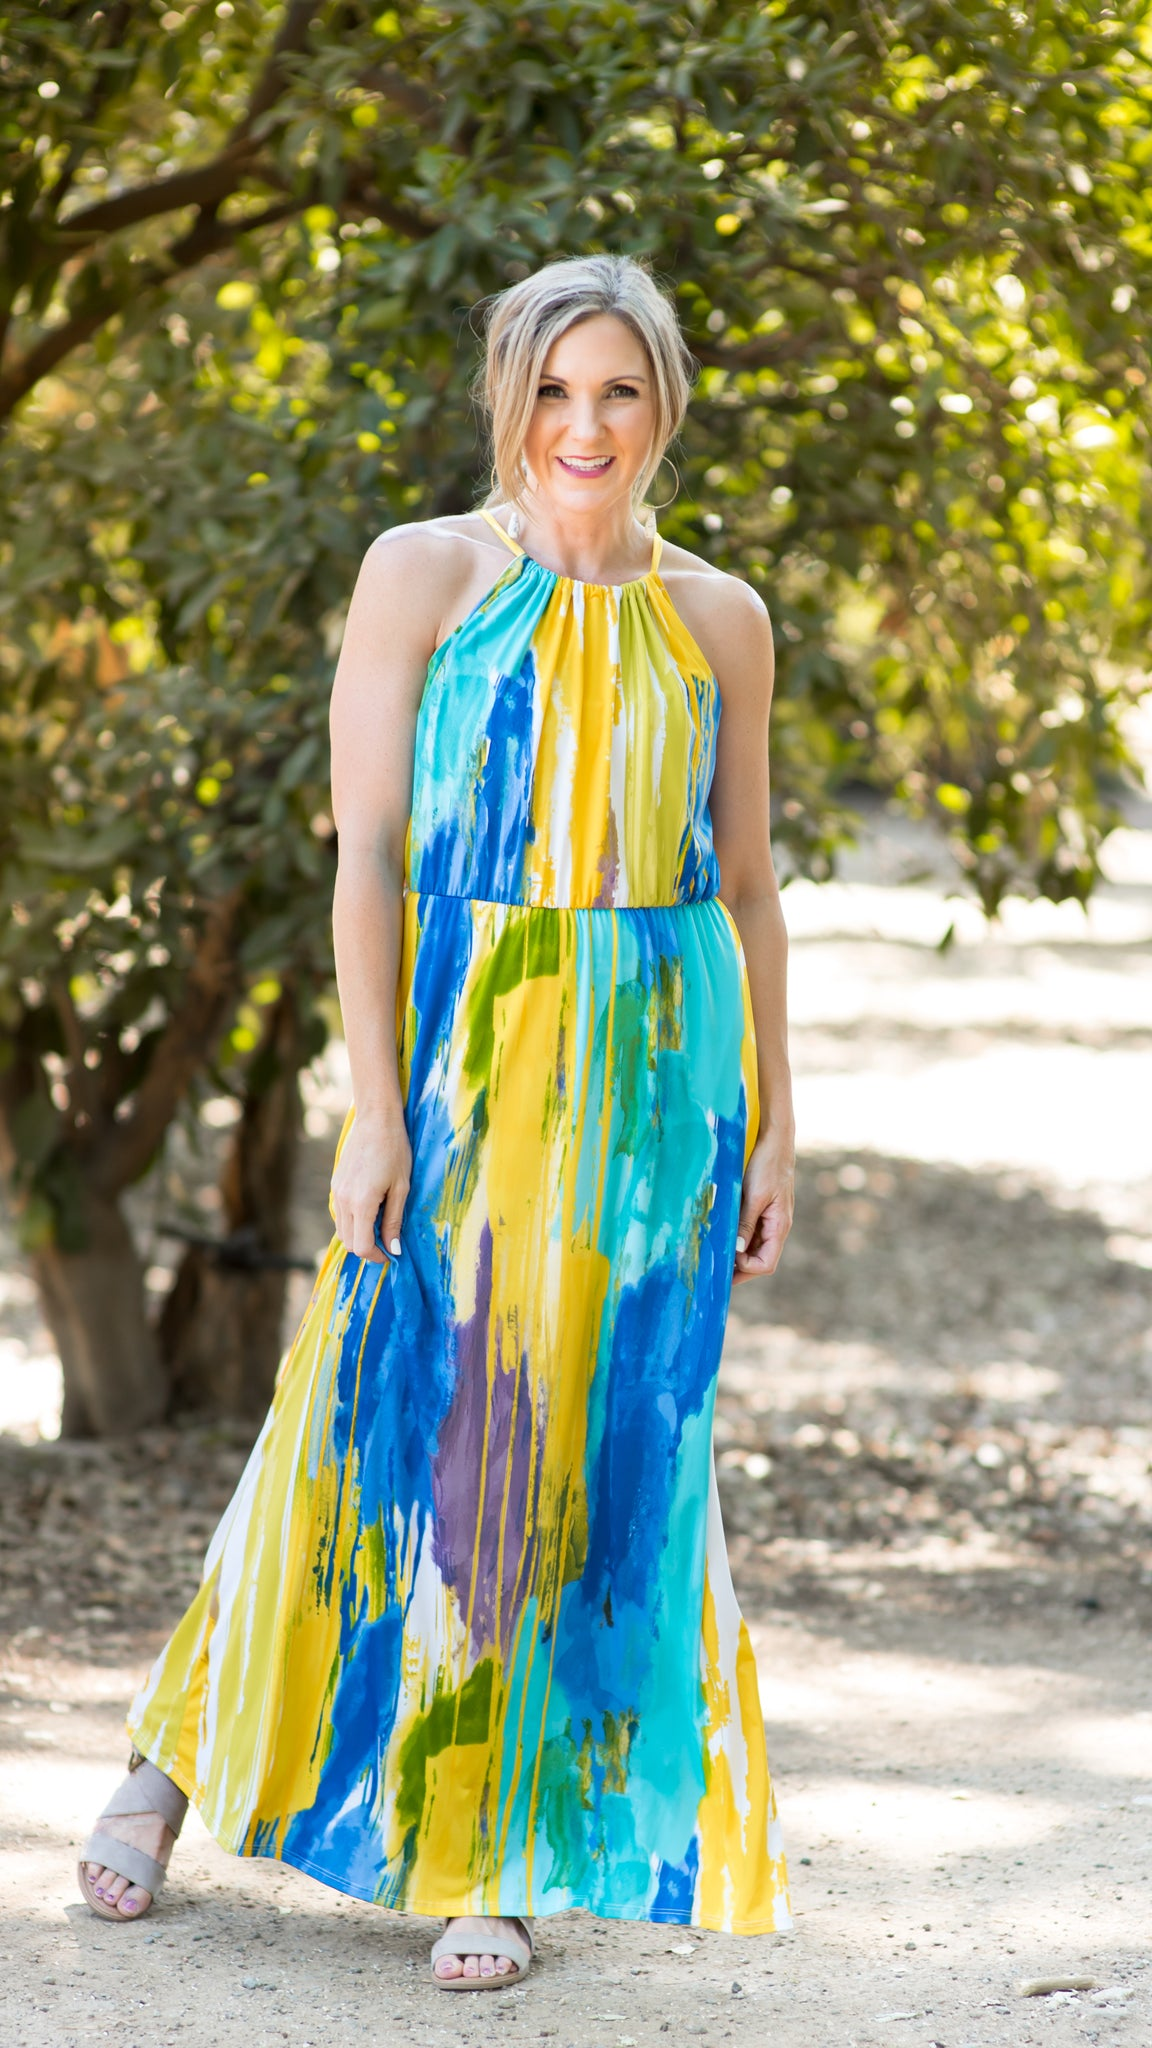 Newport Beach Halter Maxi Dress